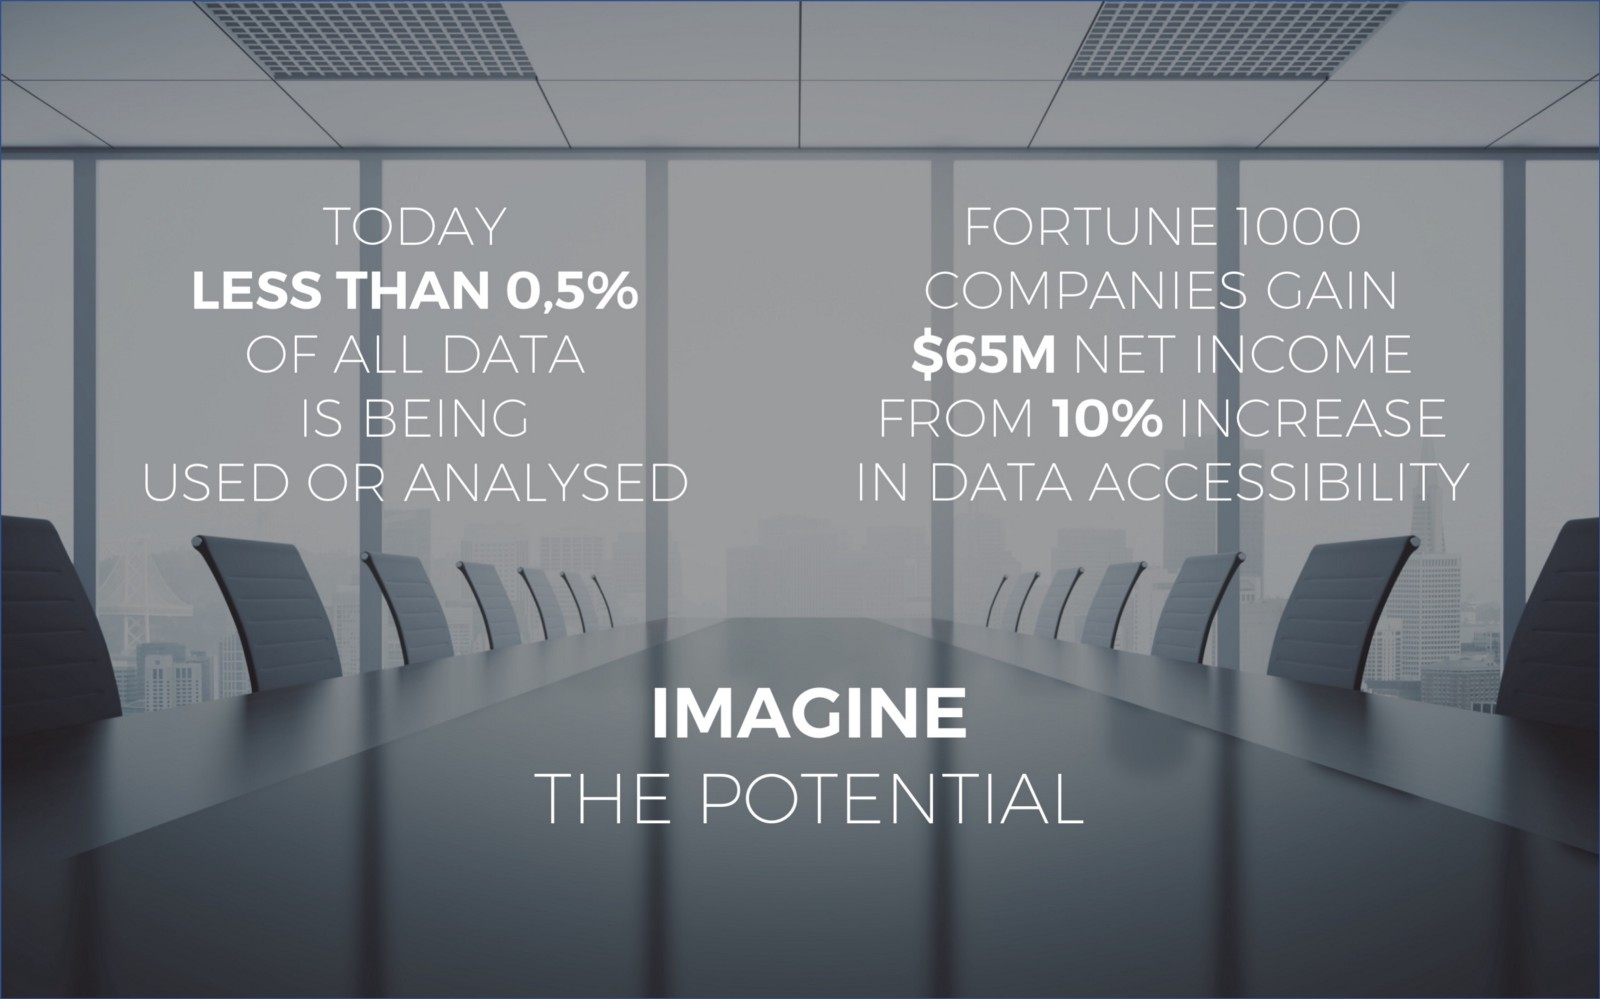 Today less than 0.5% of all data is being used or analysed. Fortune 1000 companies gain $65m net income from 10% increase in data accessibility. Imagine the potential - Salesflare sales deck